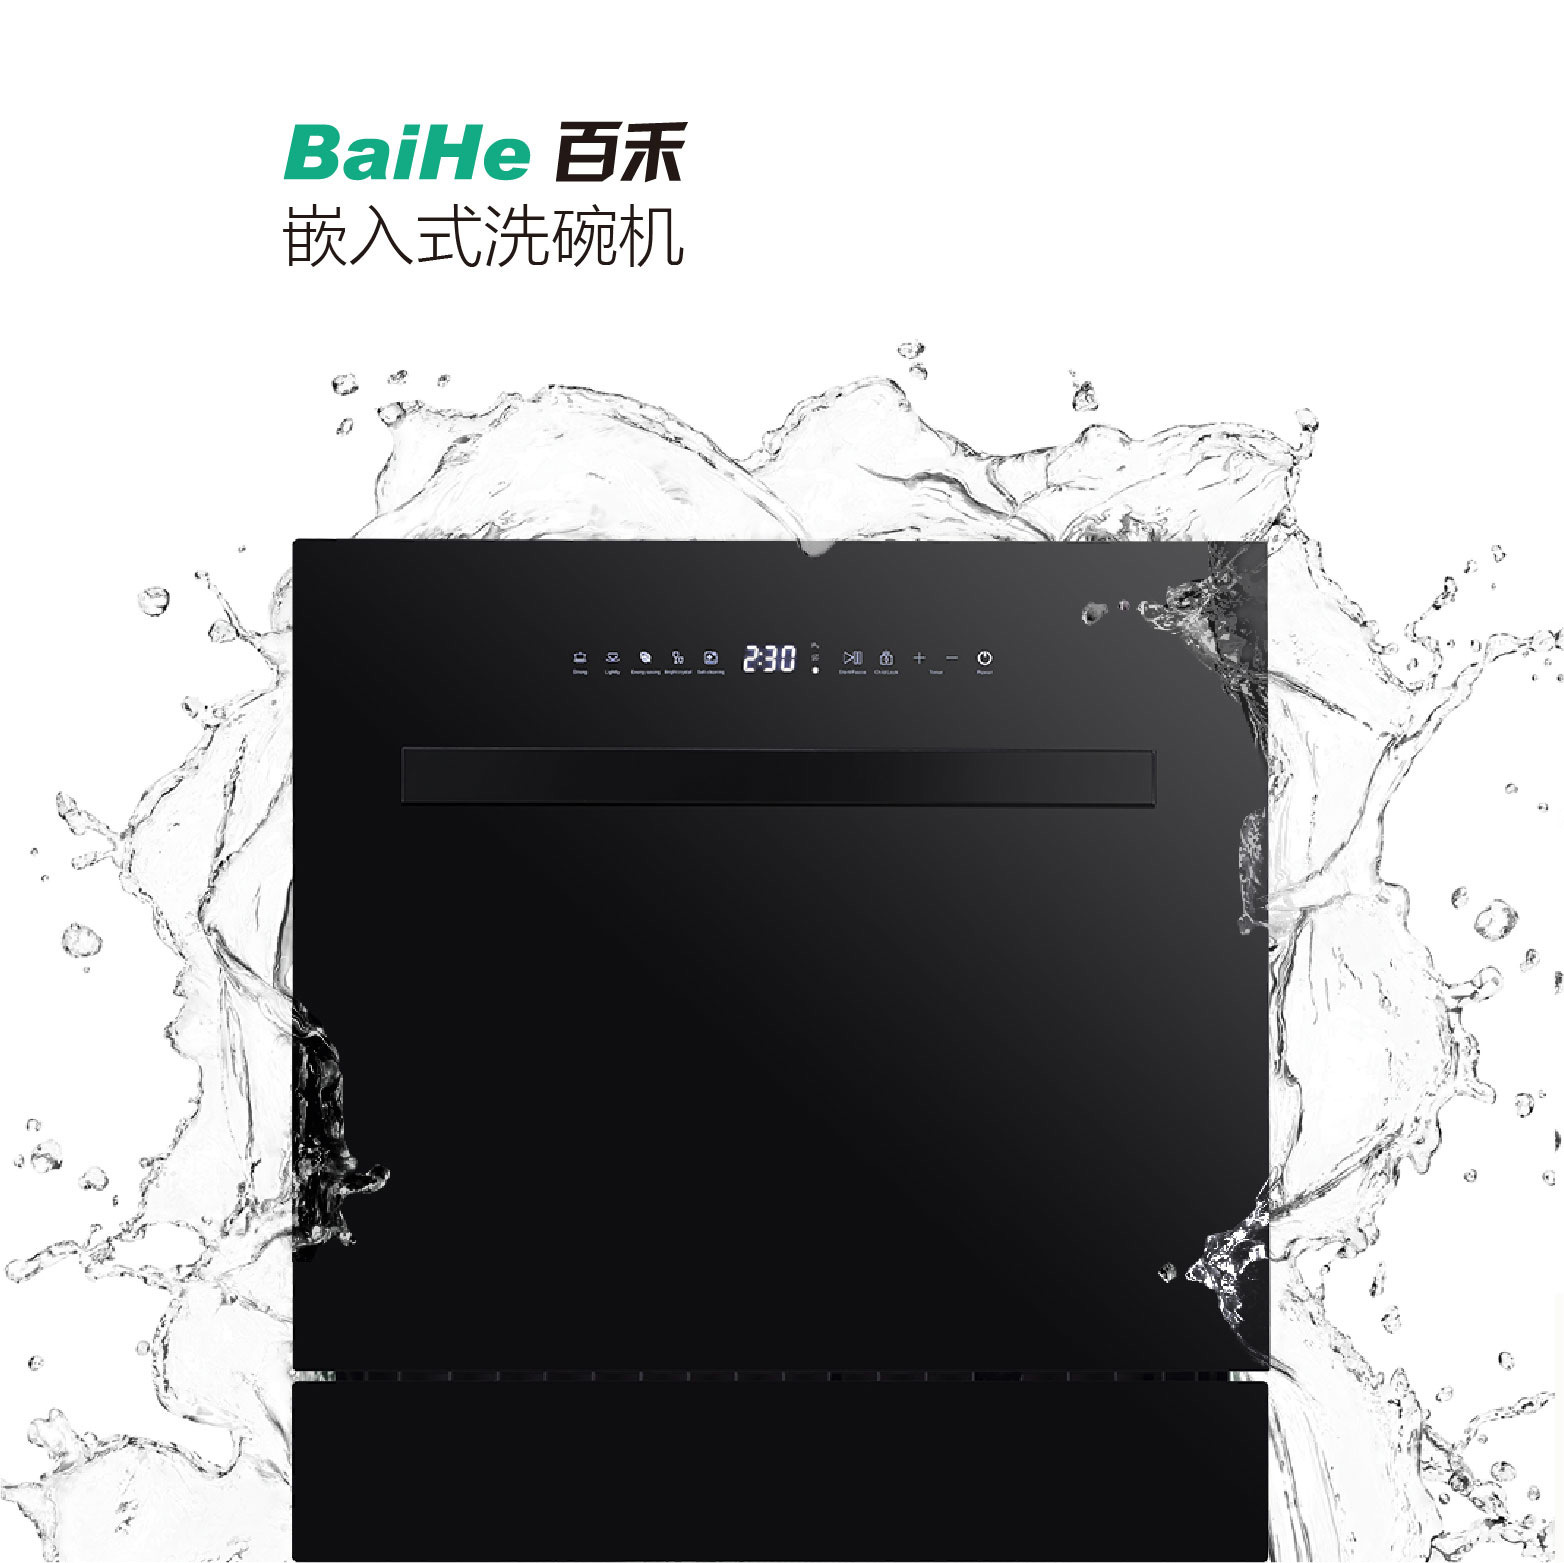 Baihe dishwasher household built-in 8-piece set, washing, drying and disinfecting automatic steriliz